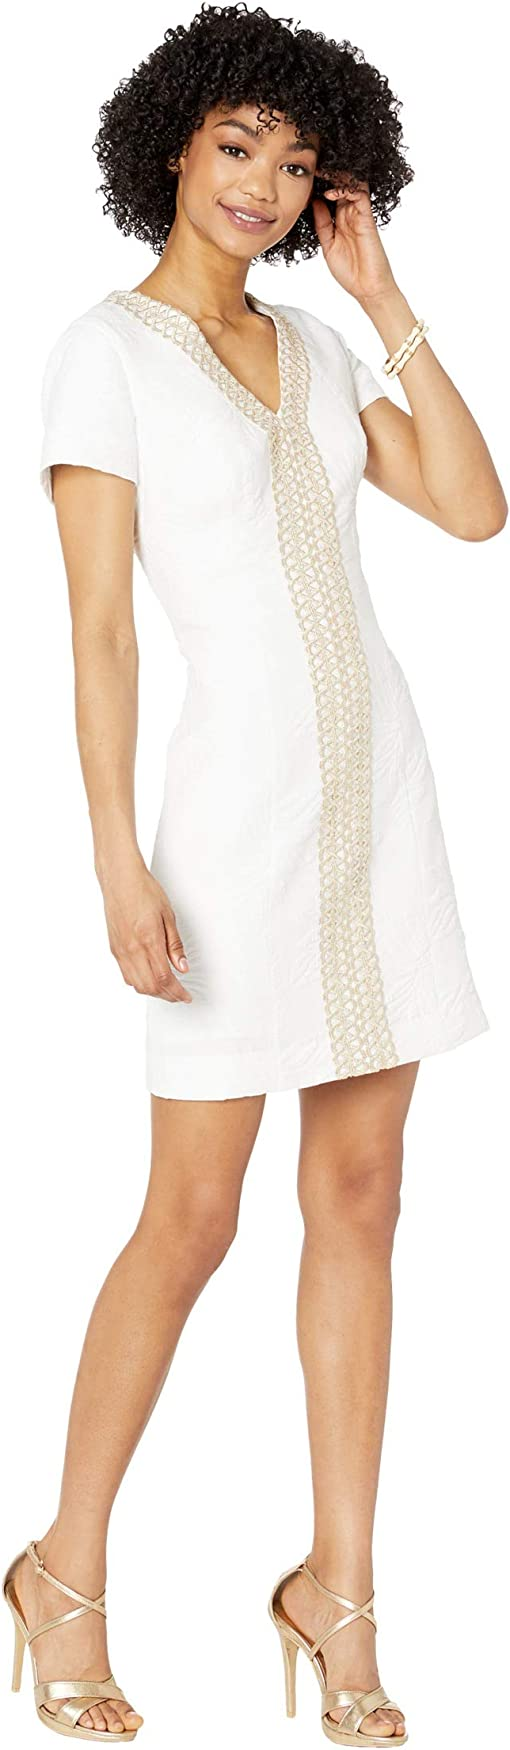 Resort White Palm Paradise Pucker Jacquard